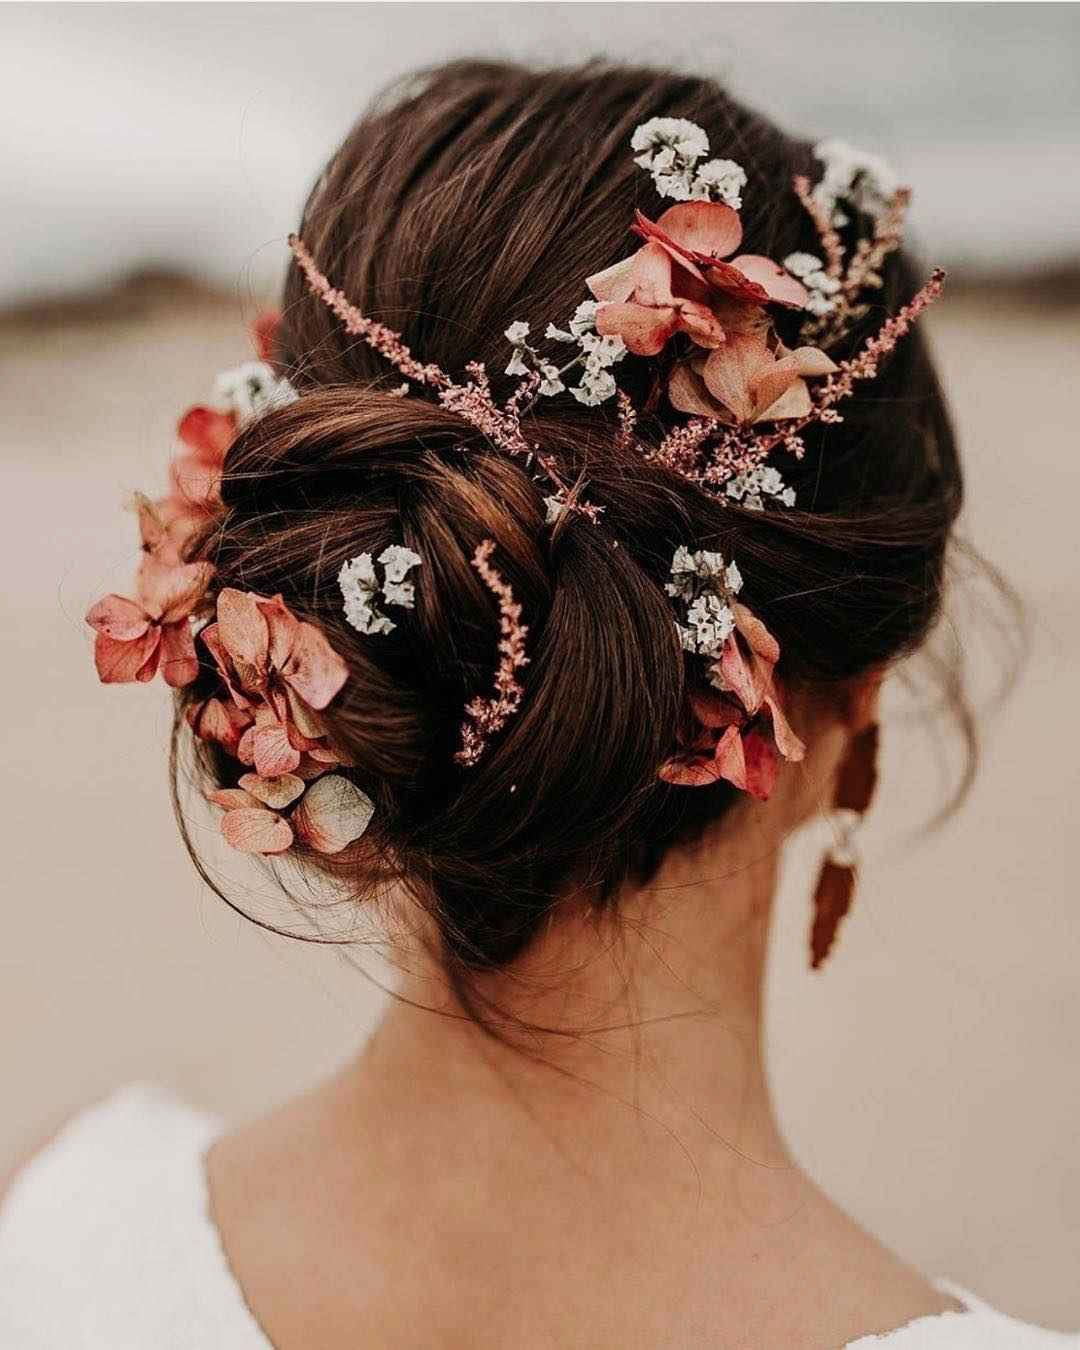 Hairstyles for prom for medium hair 2019-2020 photo 13